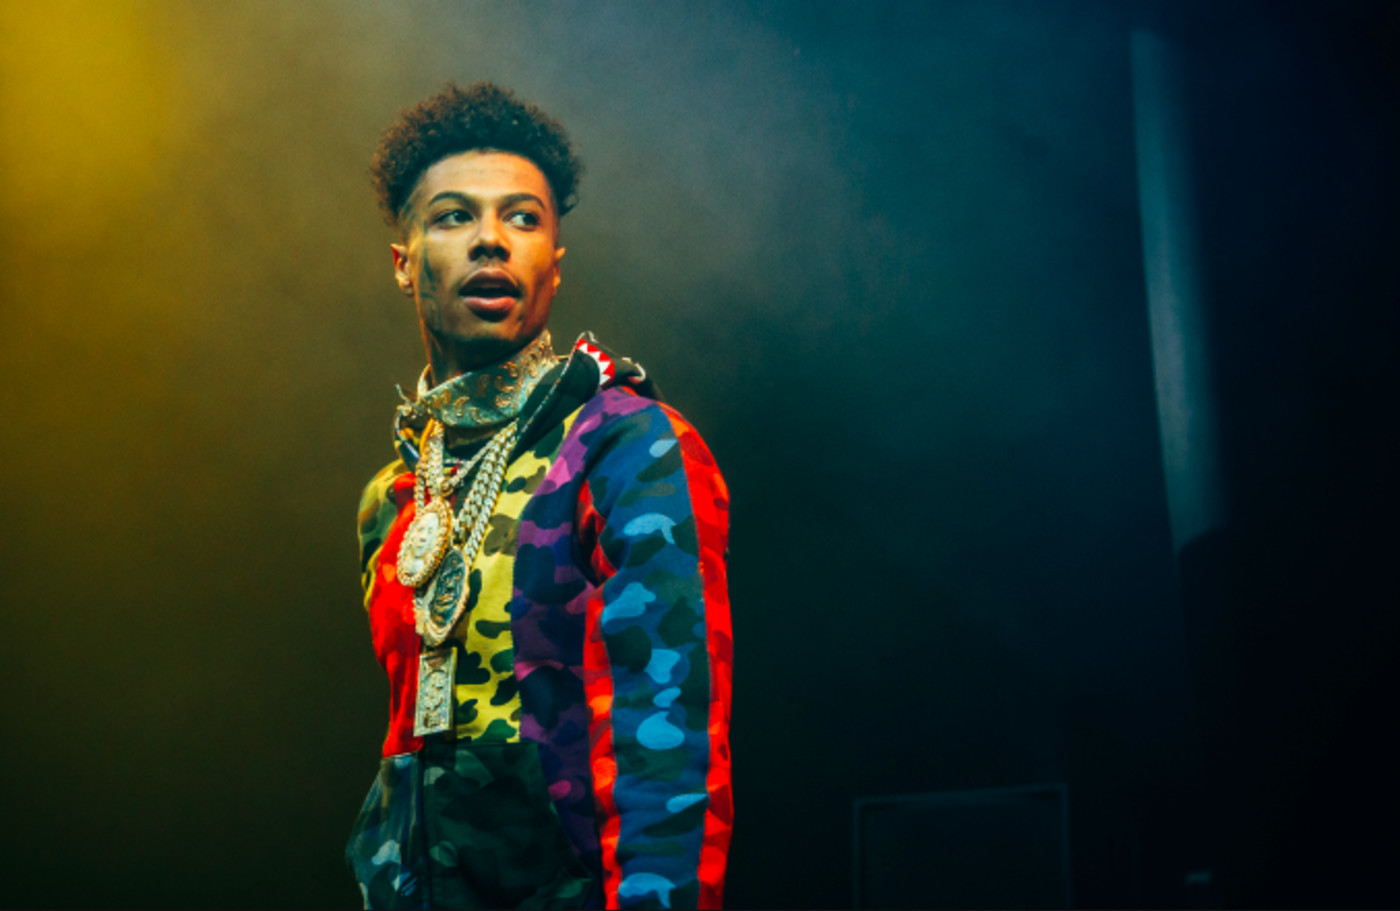 Blueface perform at O2 Academy Brixton on November 20, 2019